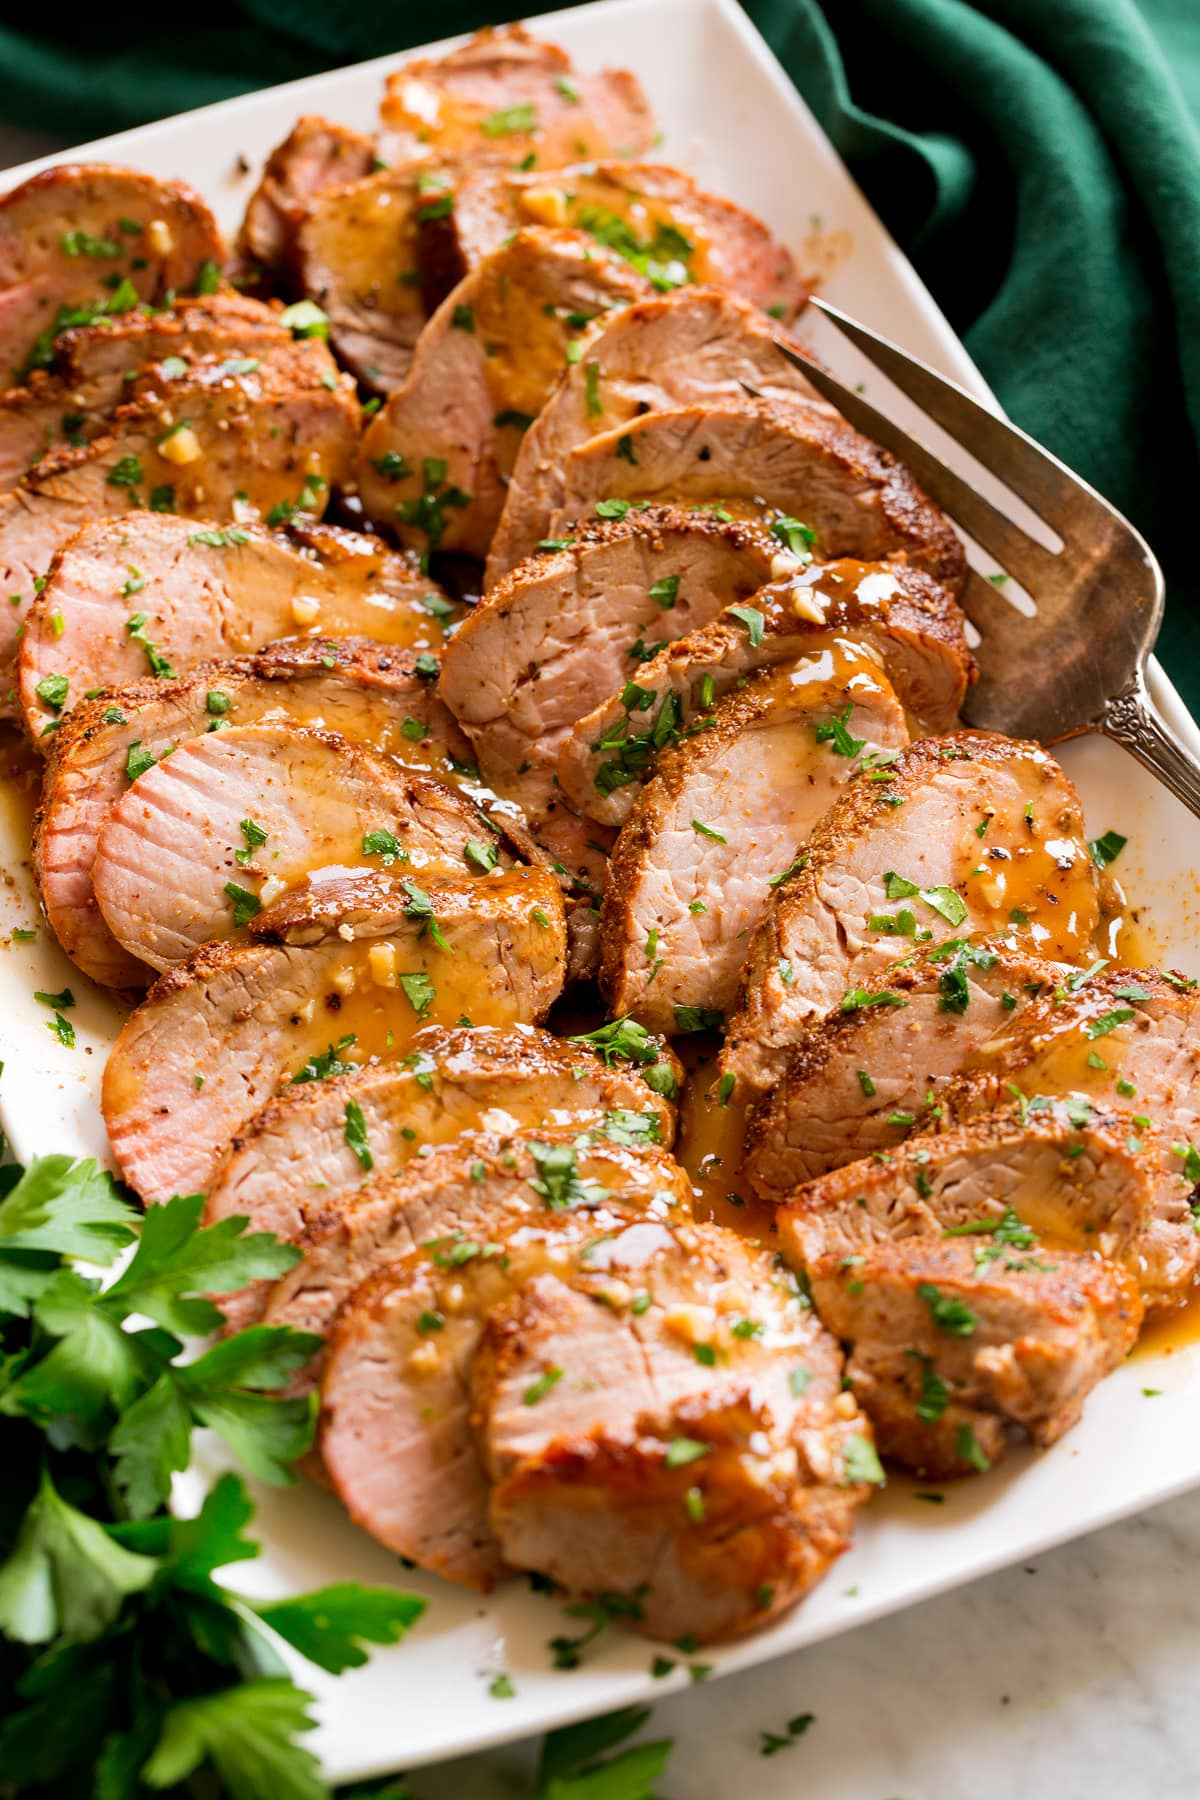 Baked Pork Tenderloin sliced into strips resting shown on a platter. Pork is rubbed with spices, topped with a pan sauce and parsley.